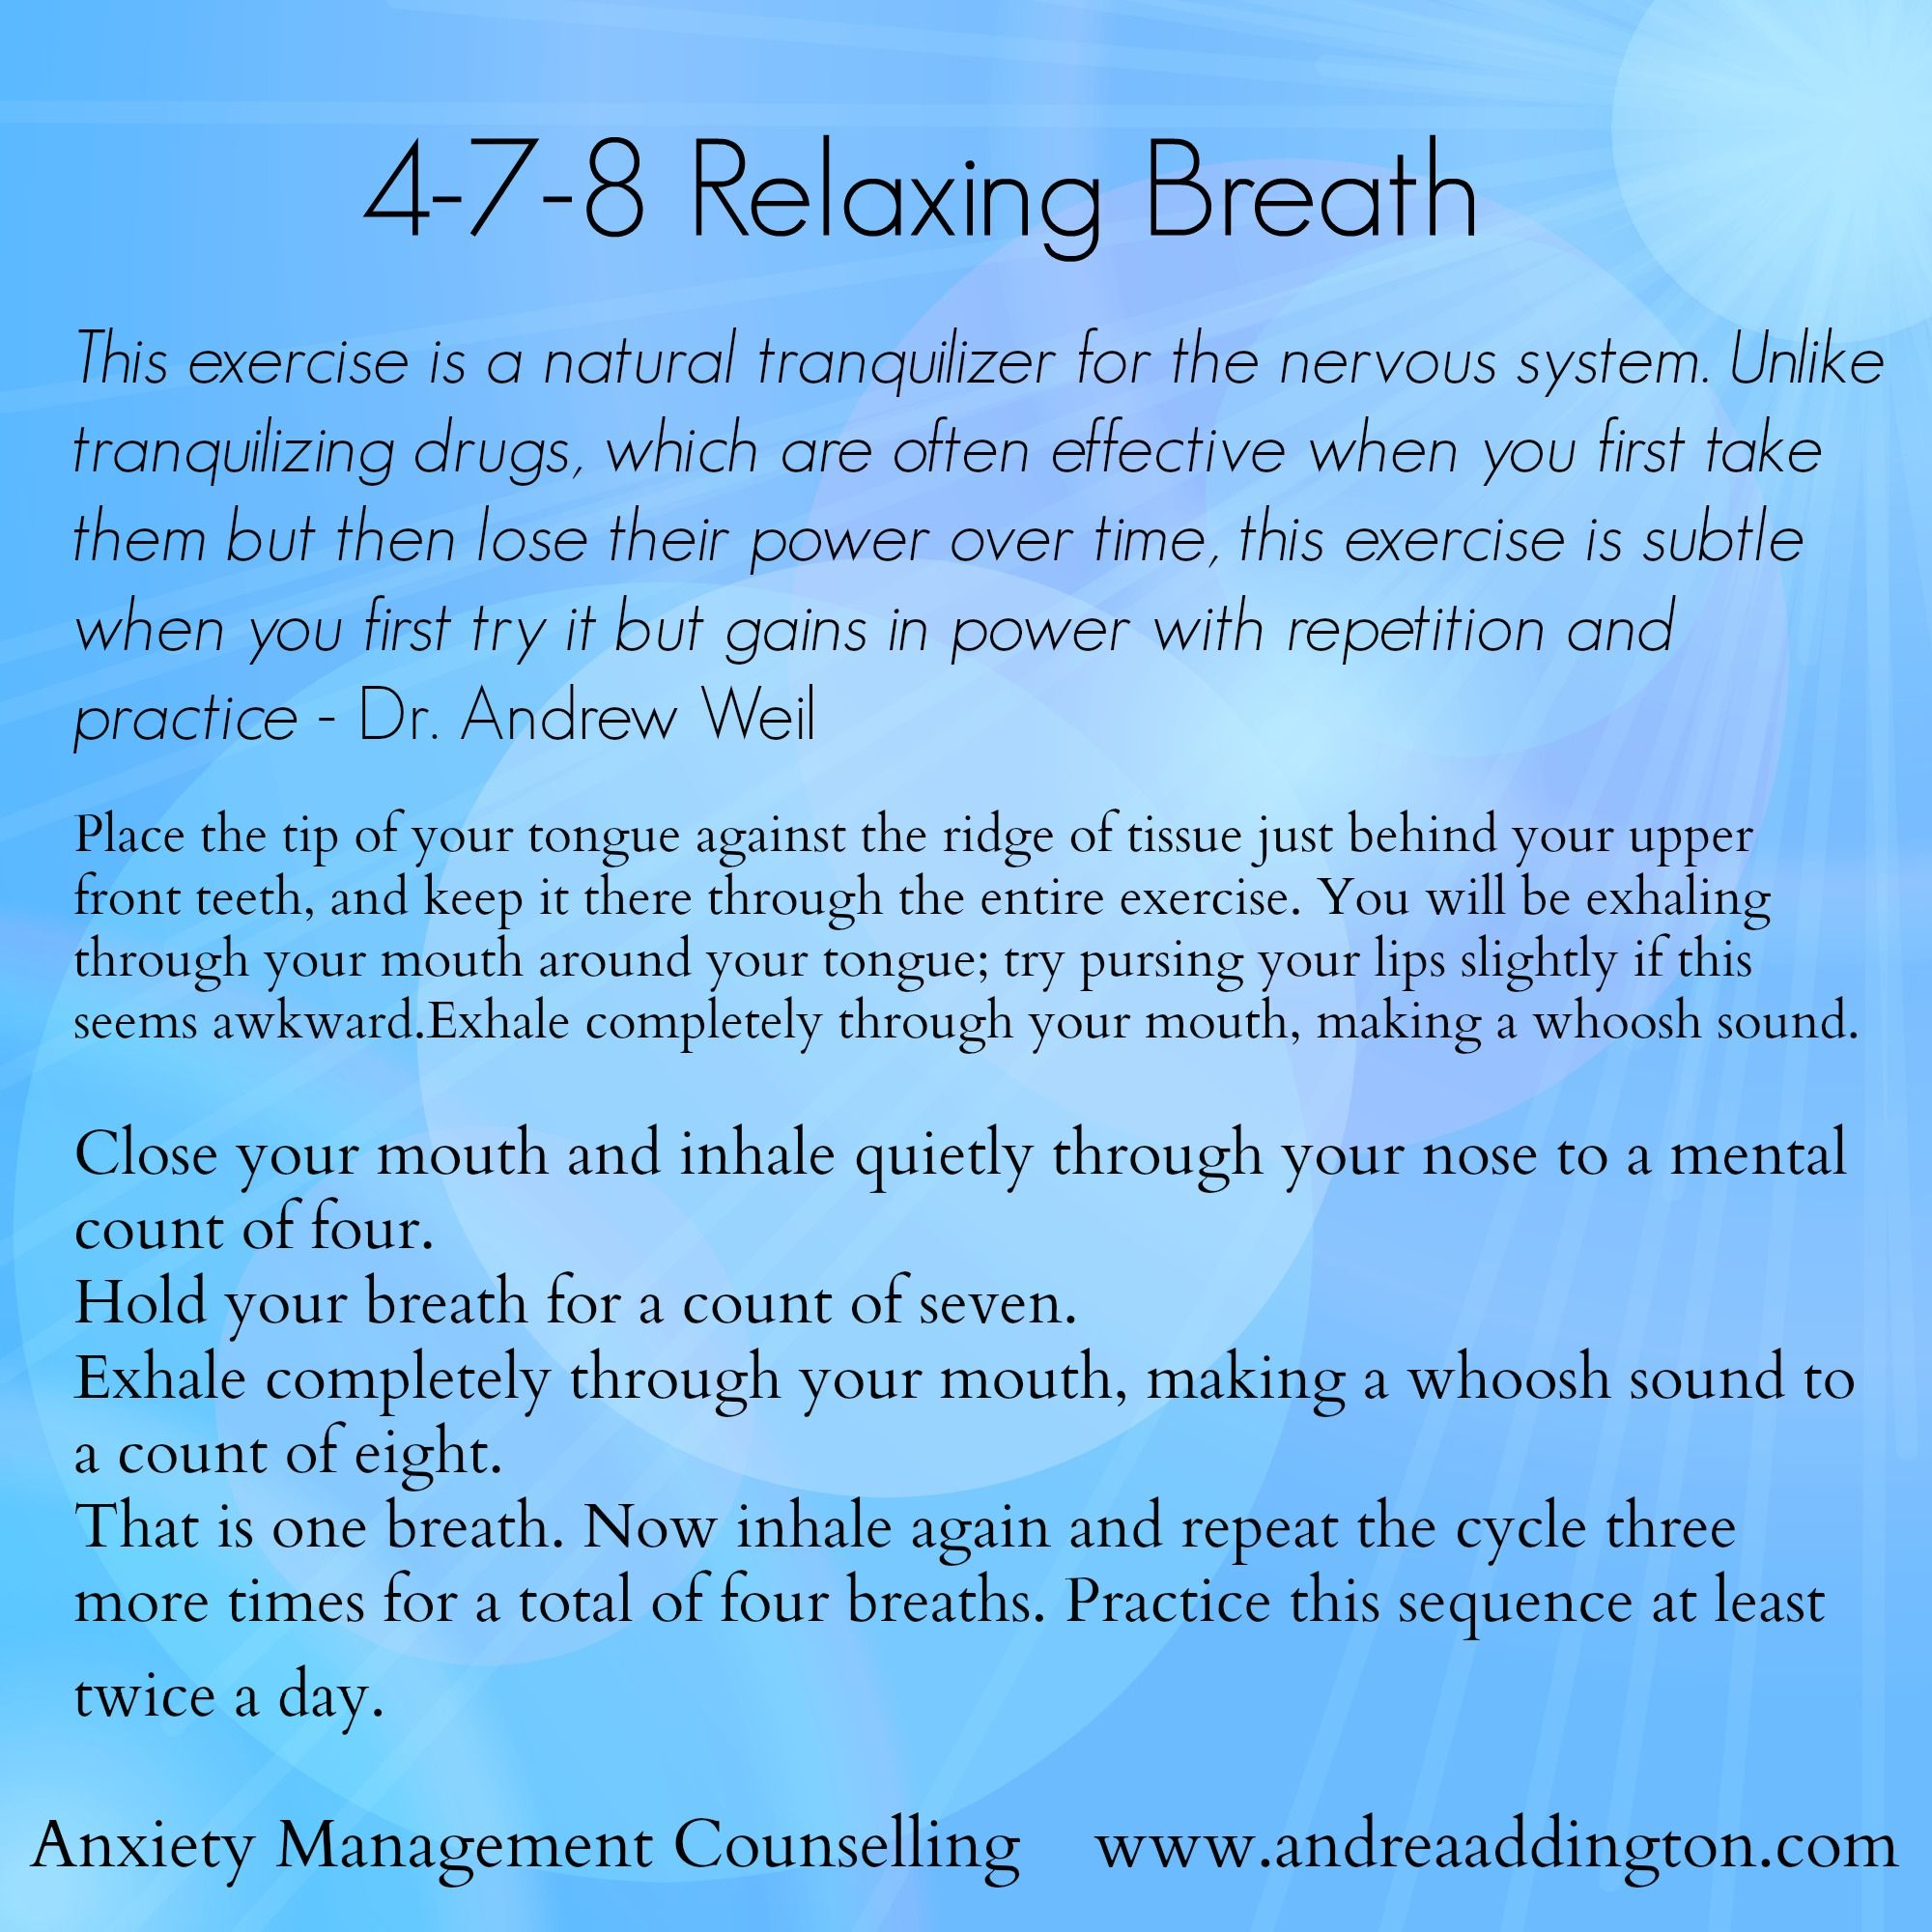 4 7 8 Relaxation Breath From Dr Andrew Weil